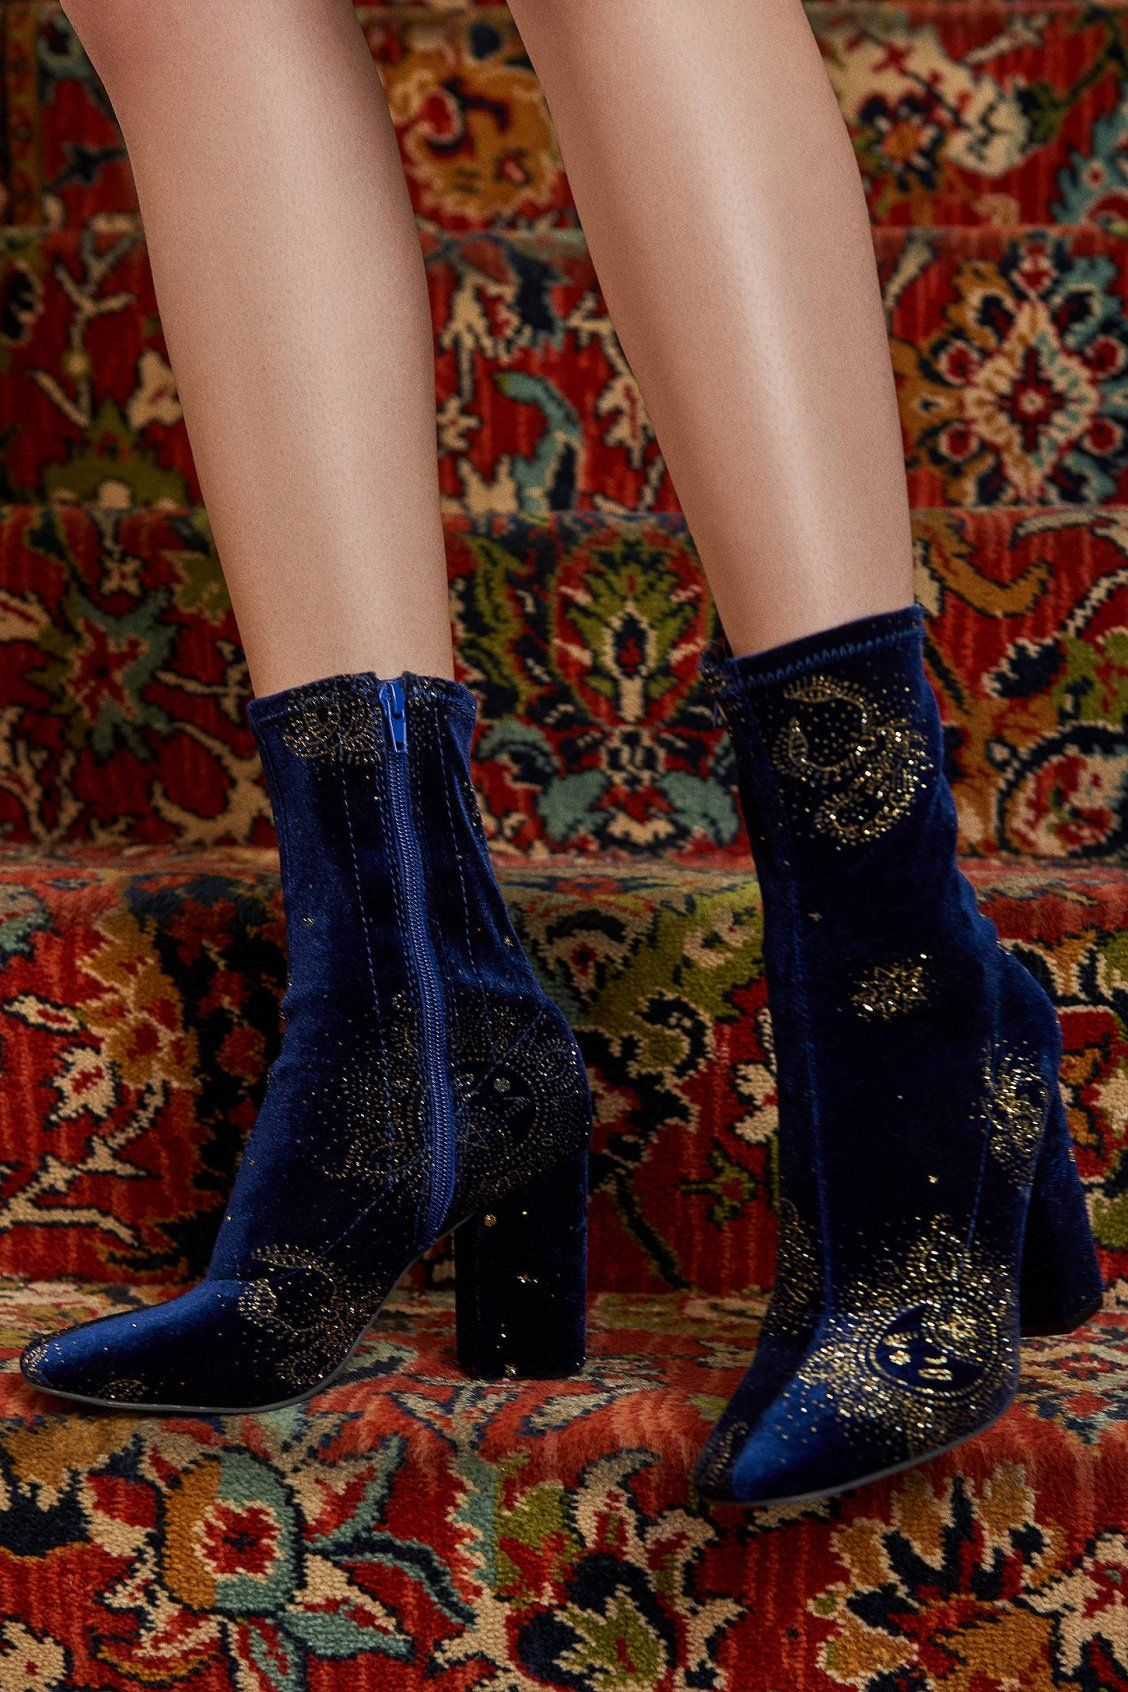 816a16899f4 ... High Heels For Moms - Shoes Market Experts. Celestial Glove Boot